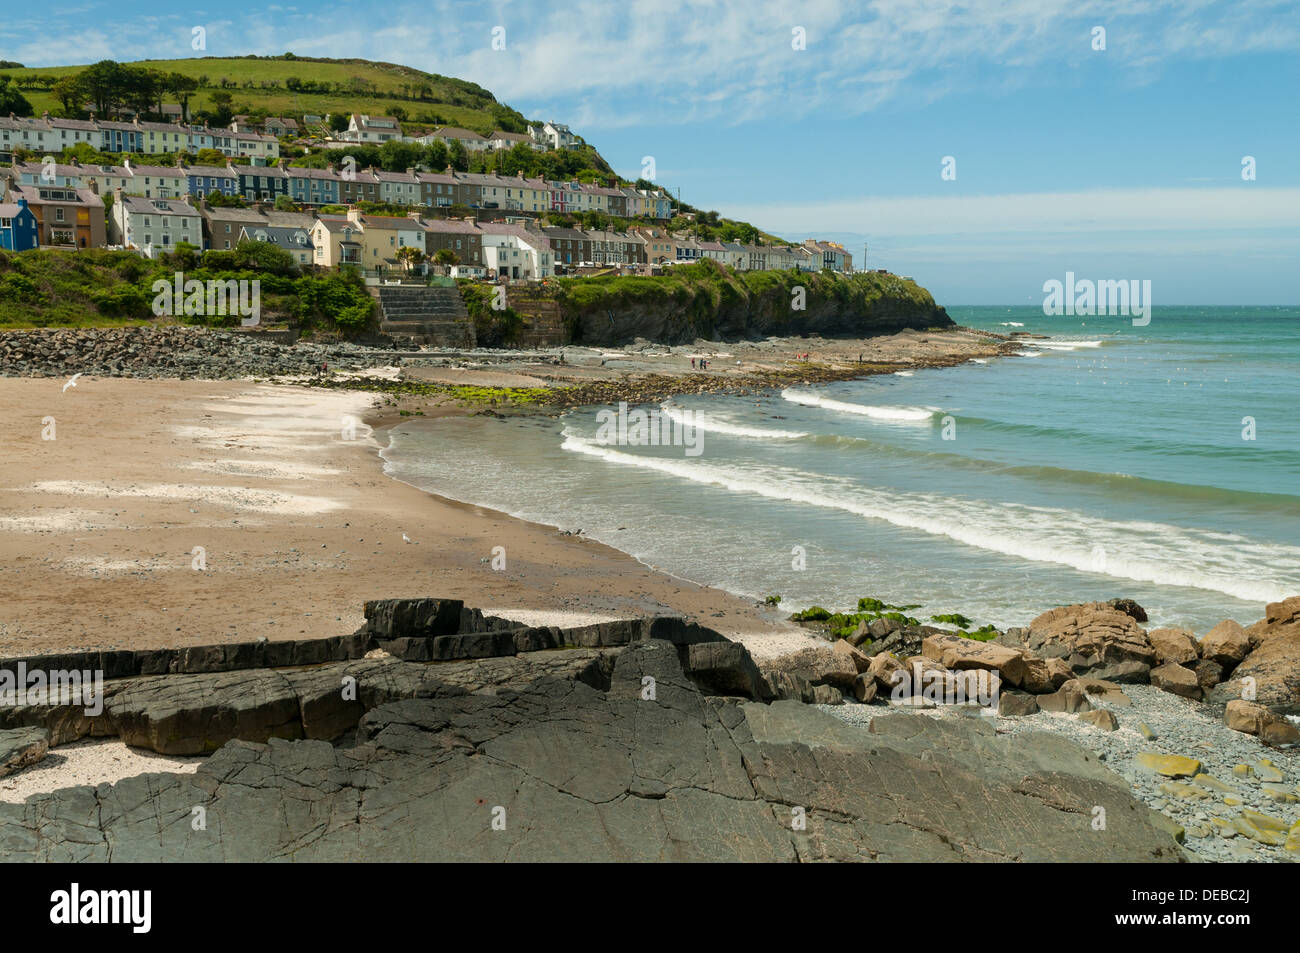 Beach at New Quay, Ceredigion, Wales - Stock Image